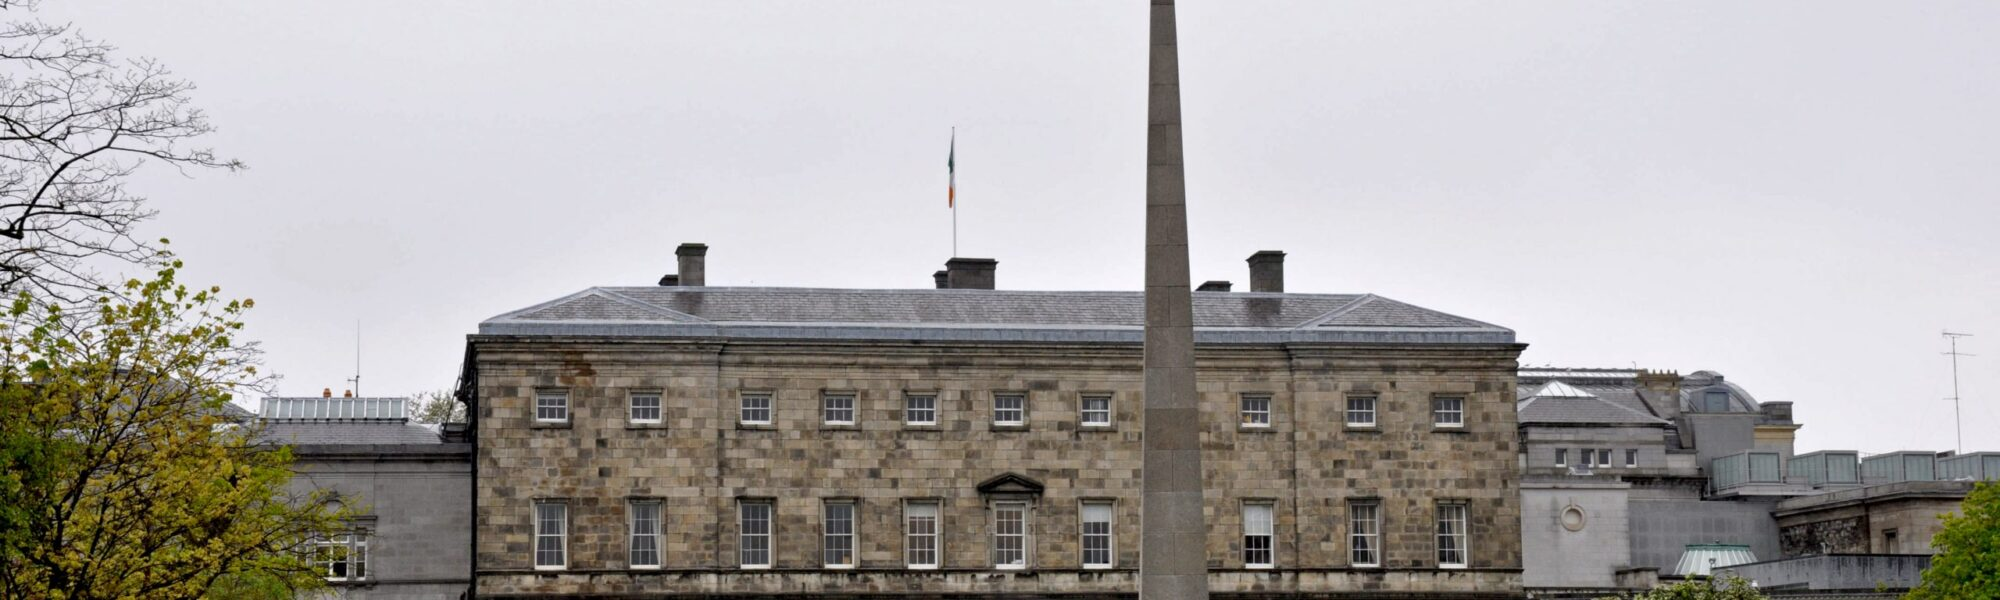 La Leinster House - Jennifer Boyer - cc